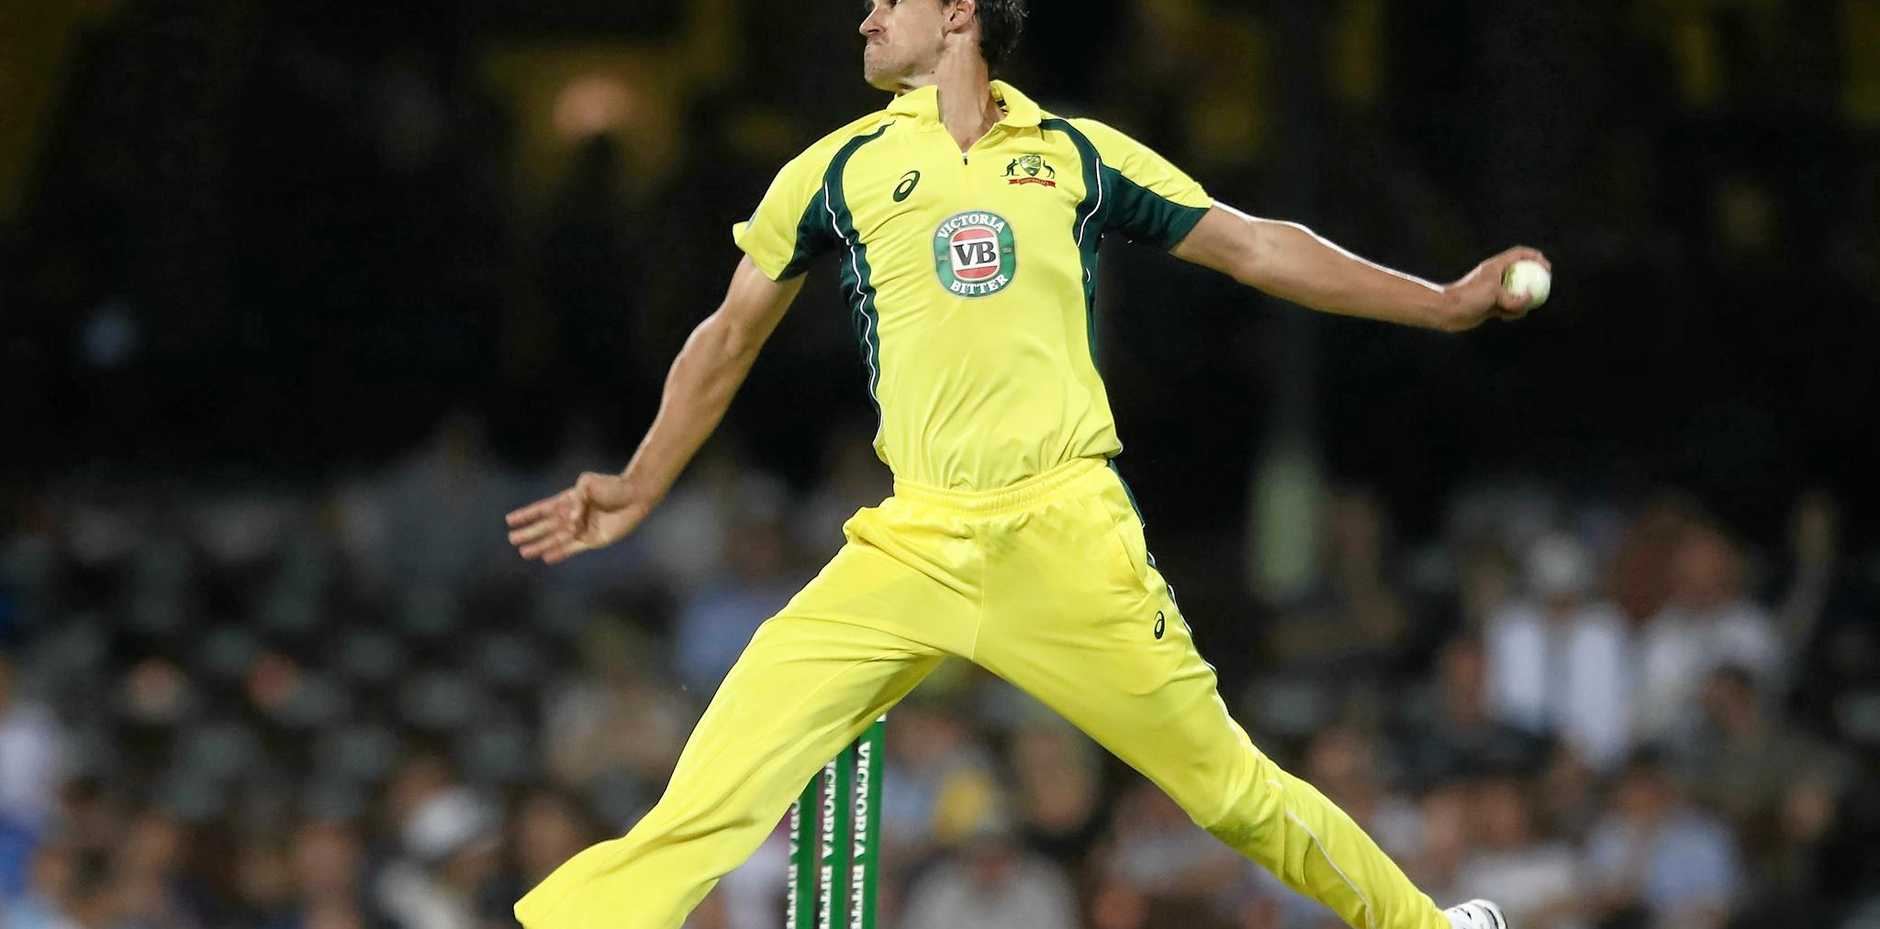 Mitchell Starc of Australia bowls against New Zealand at the SCG in December.